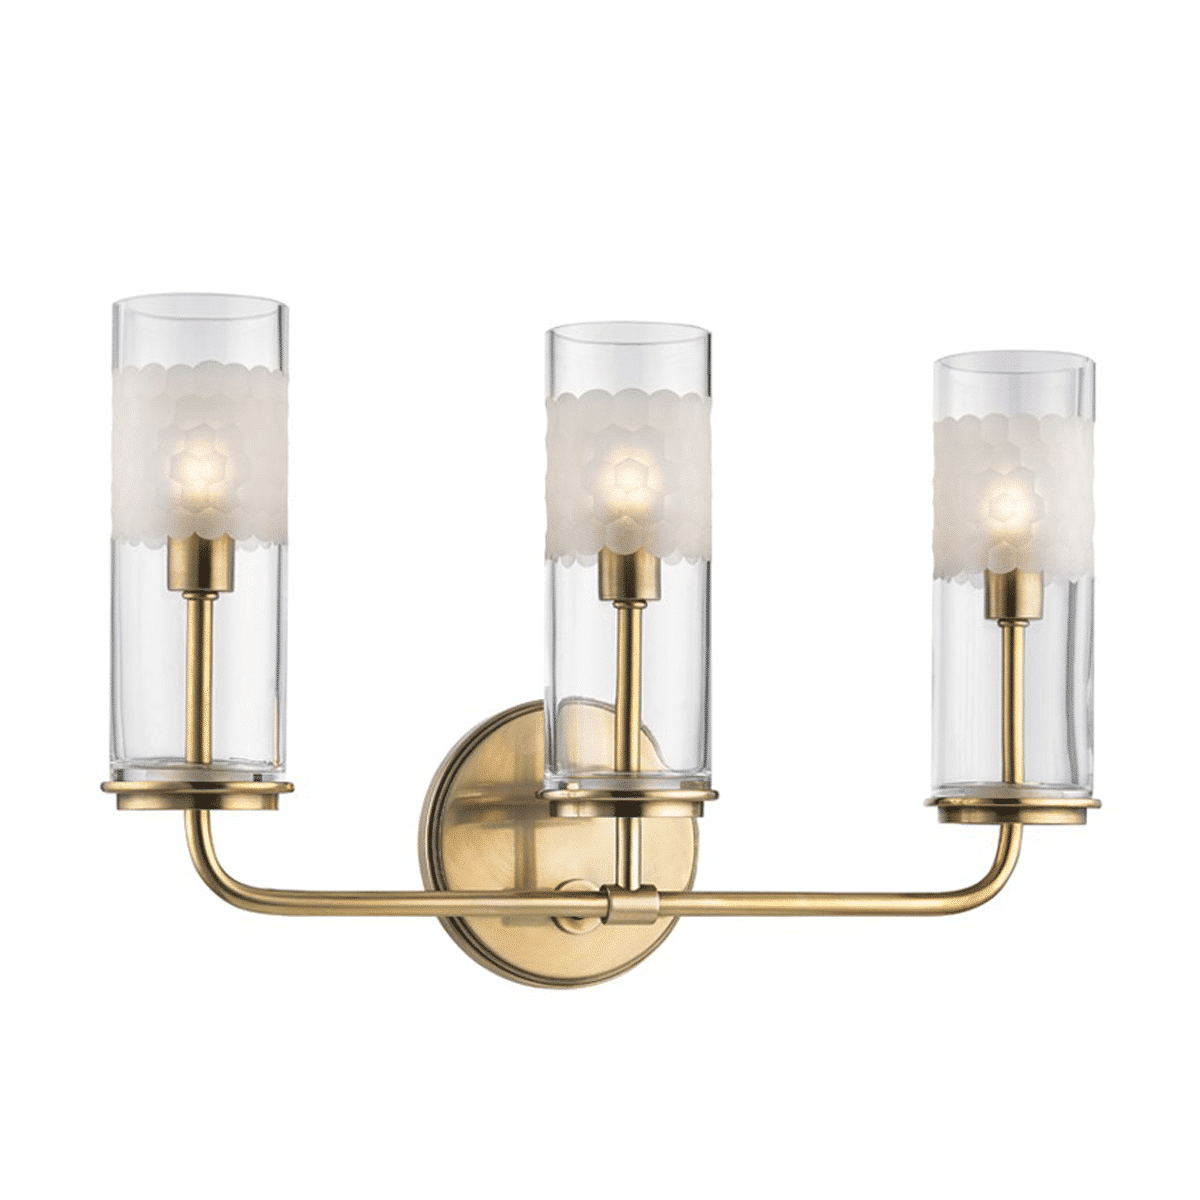 Wentworth 3 Light Wall Sconce Modern Sense Furniture